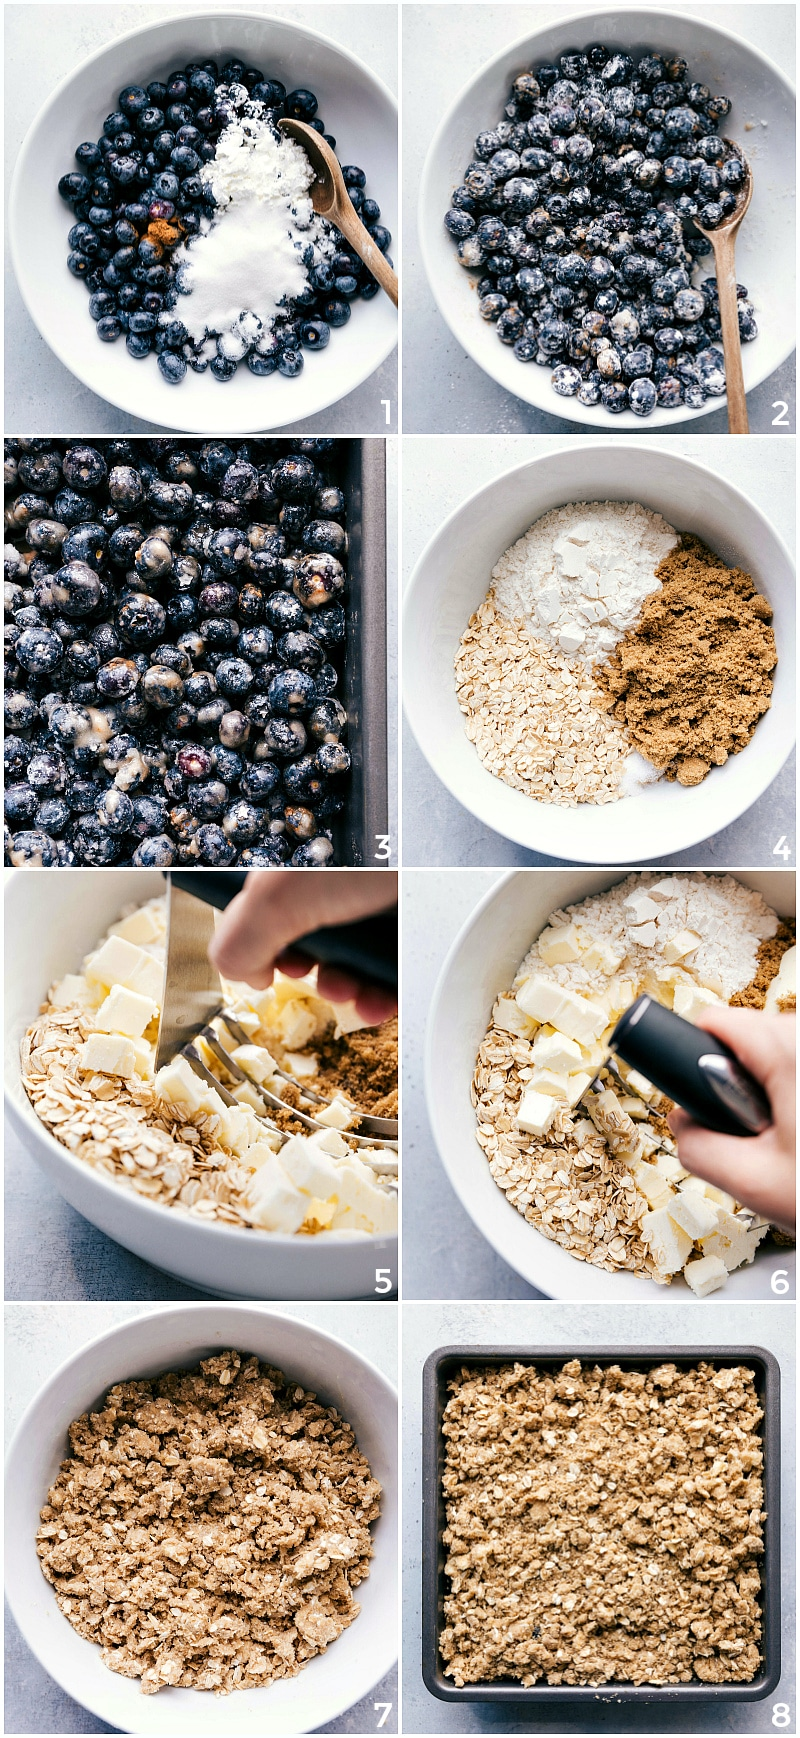 Process shots-- images of the blueberry crisp being made